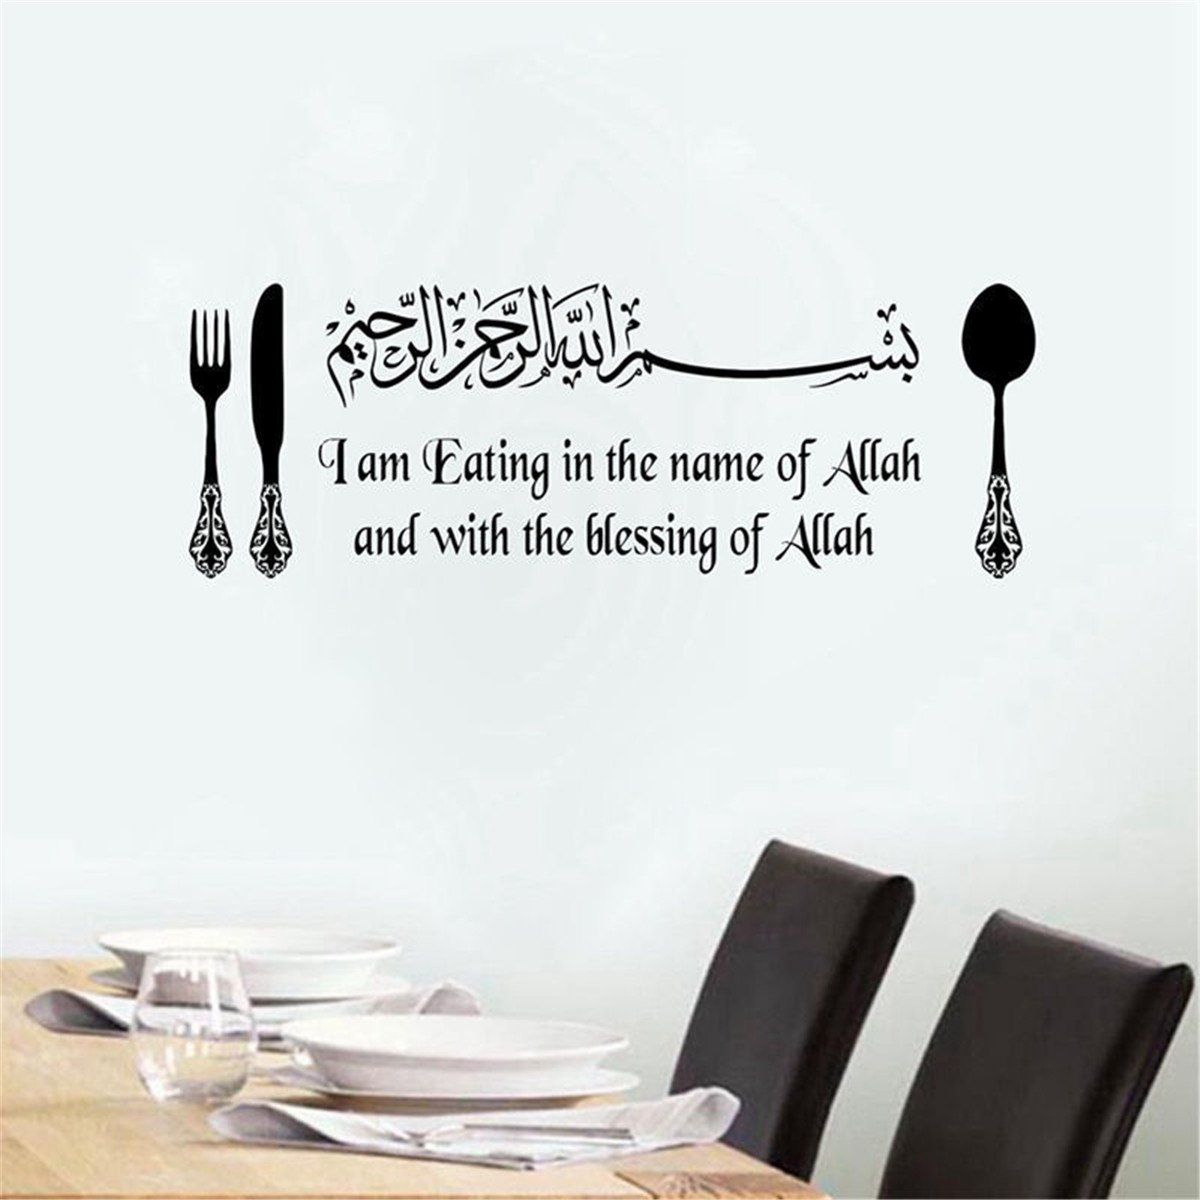 Islamic Vinyl Wall Decor Stickers Eating In The Name Of Allah Dining Kitchen Art Decal Pertaining To Casual Country Eat Here Retro Wall Decor (View 22 of 30)